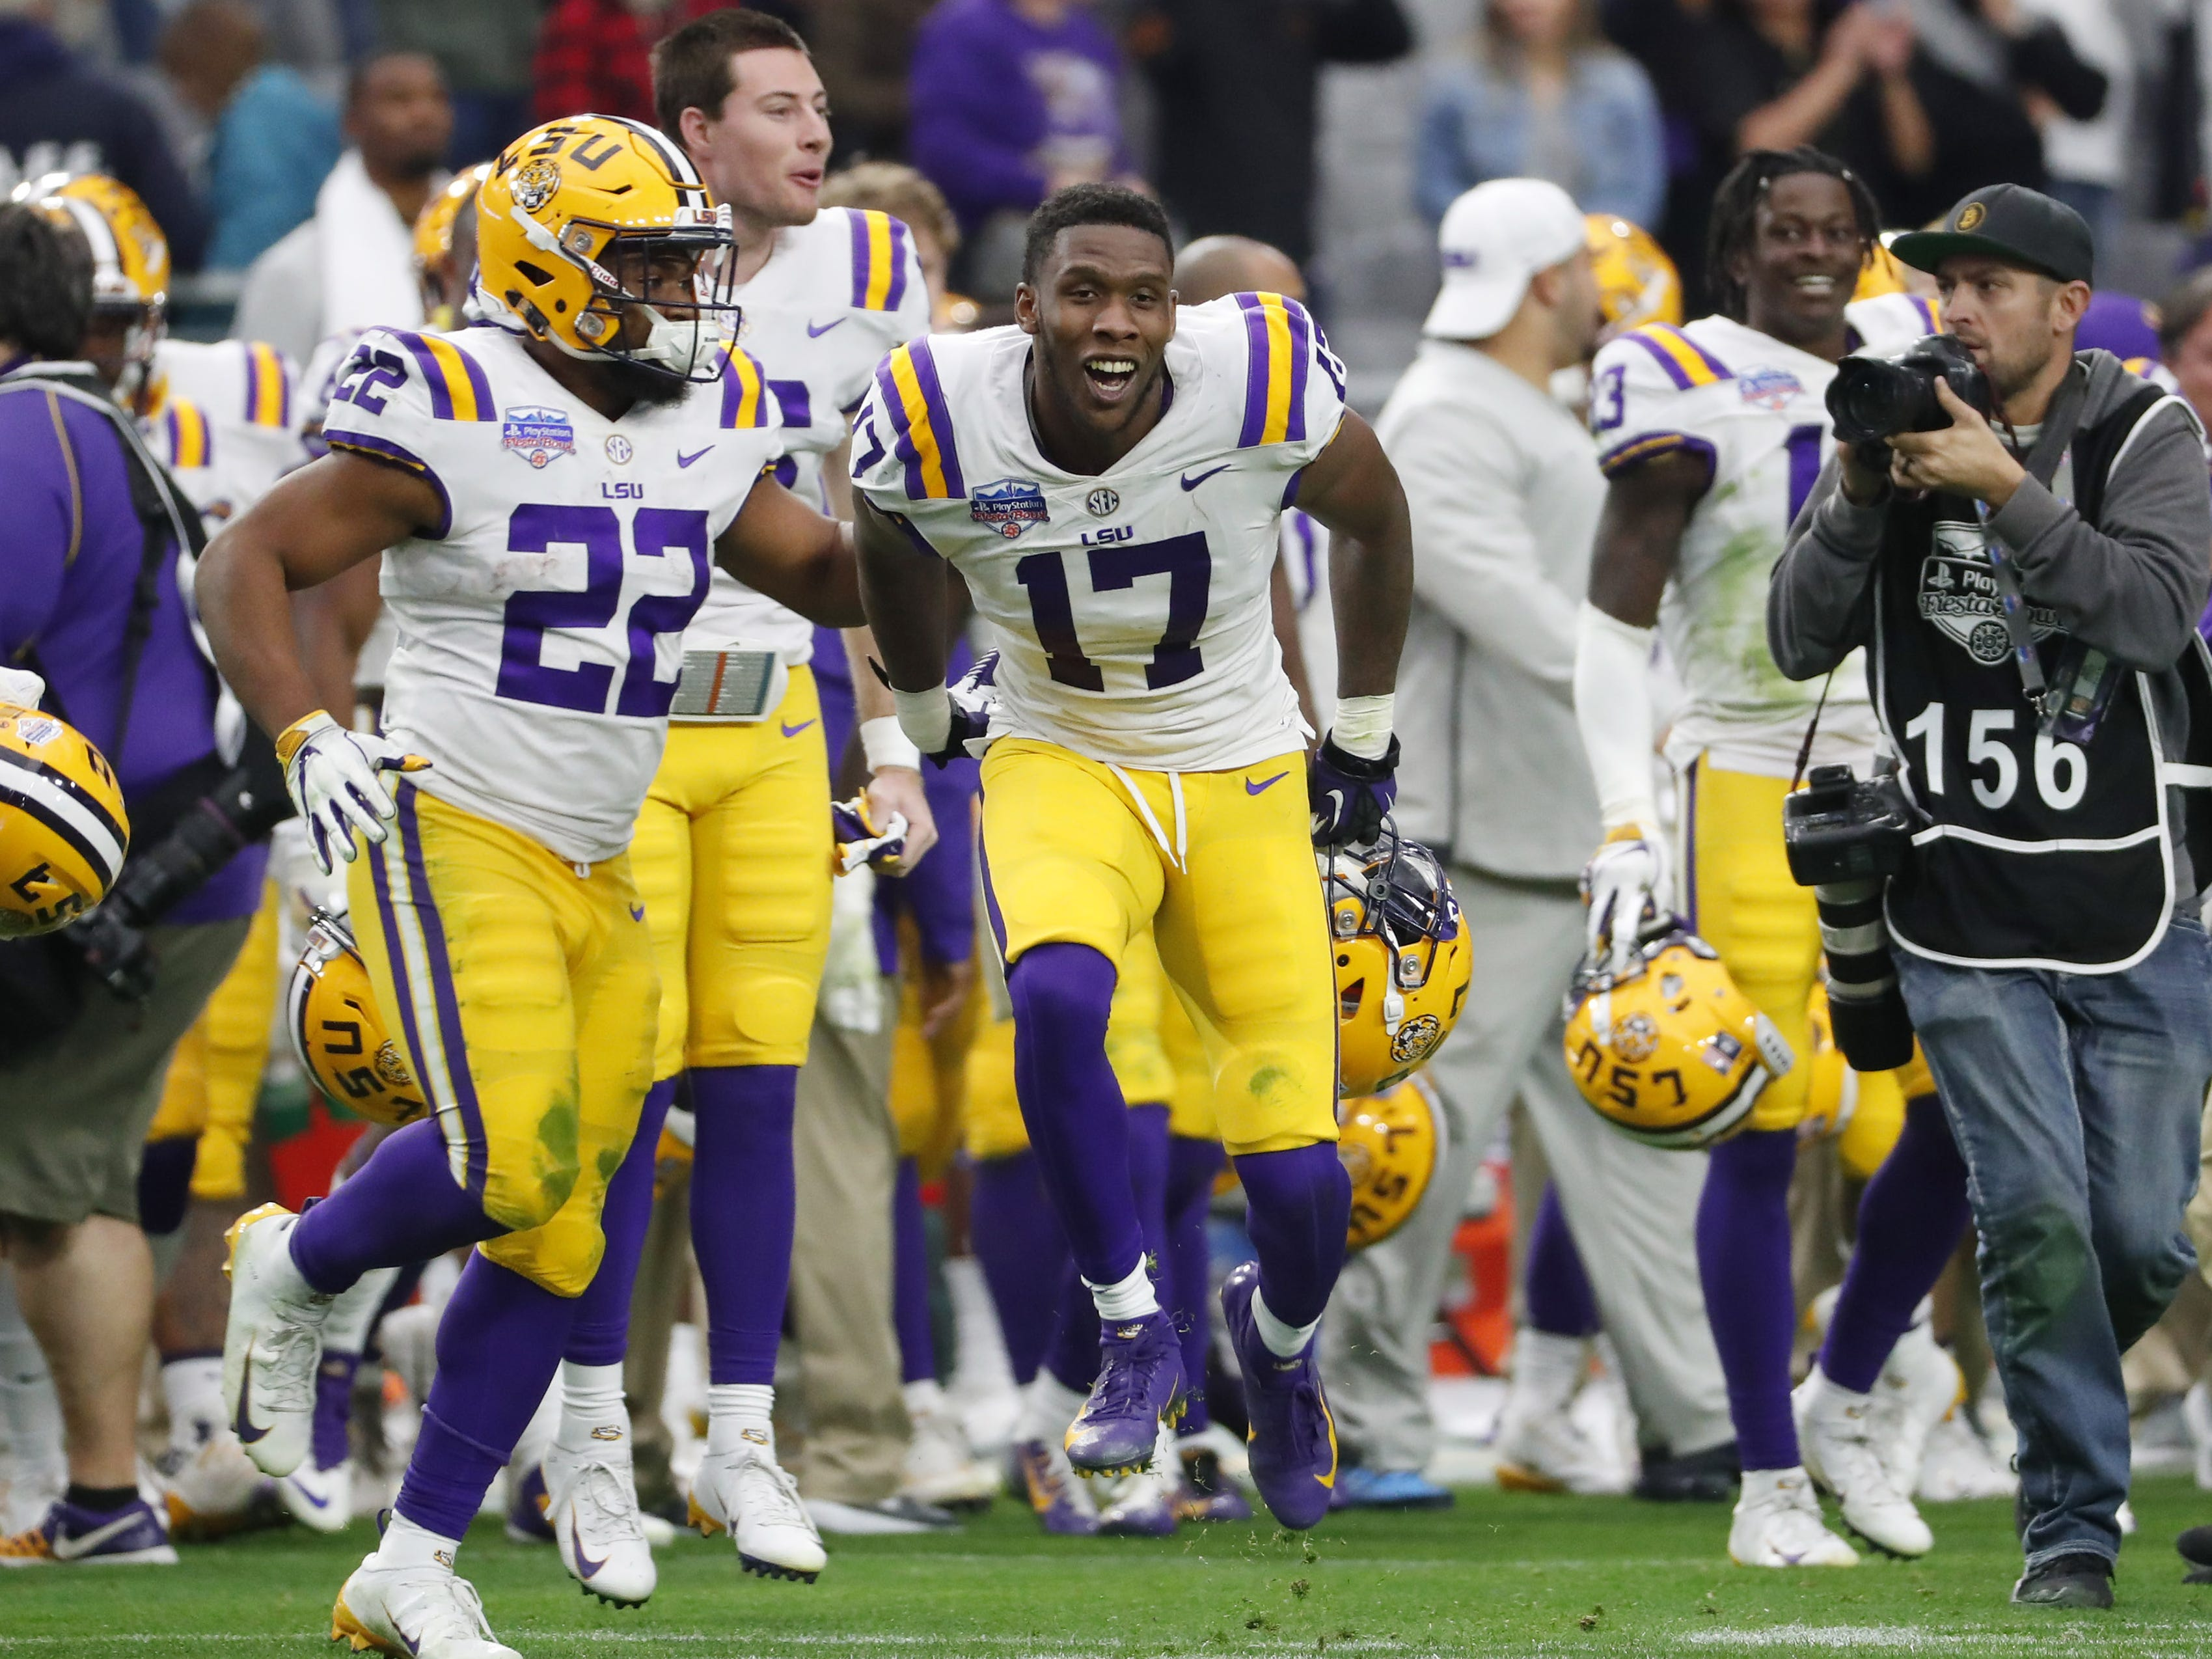 LSU players celebrate after beating UCF in the Fiesta Bowl in Glendale January 1, 2019. LSU won 40-32.